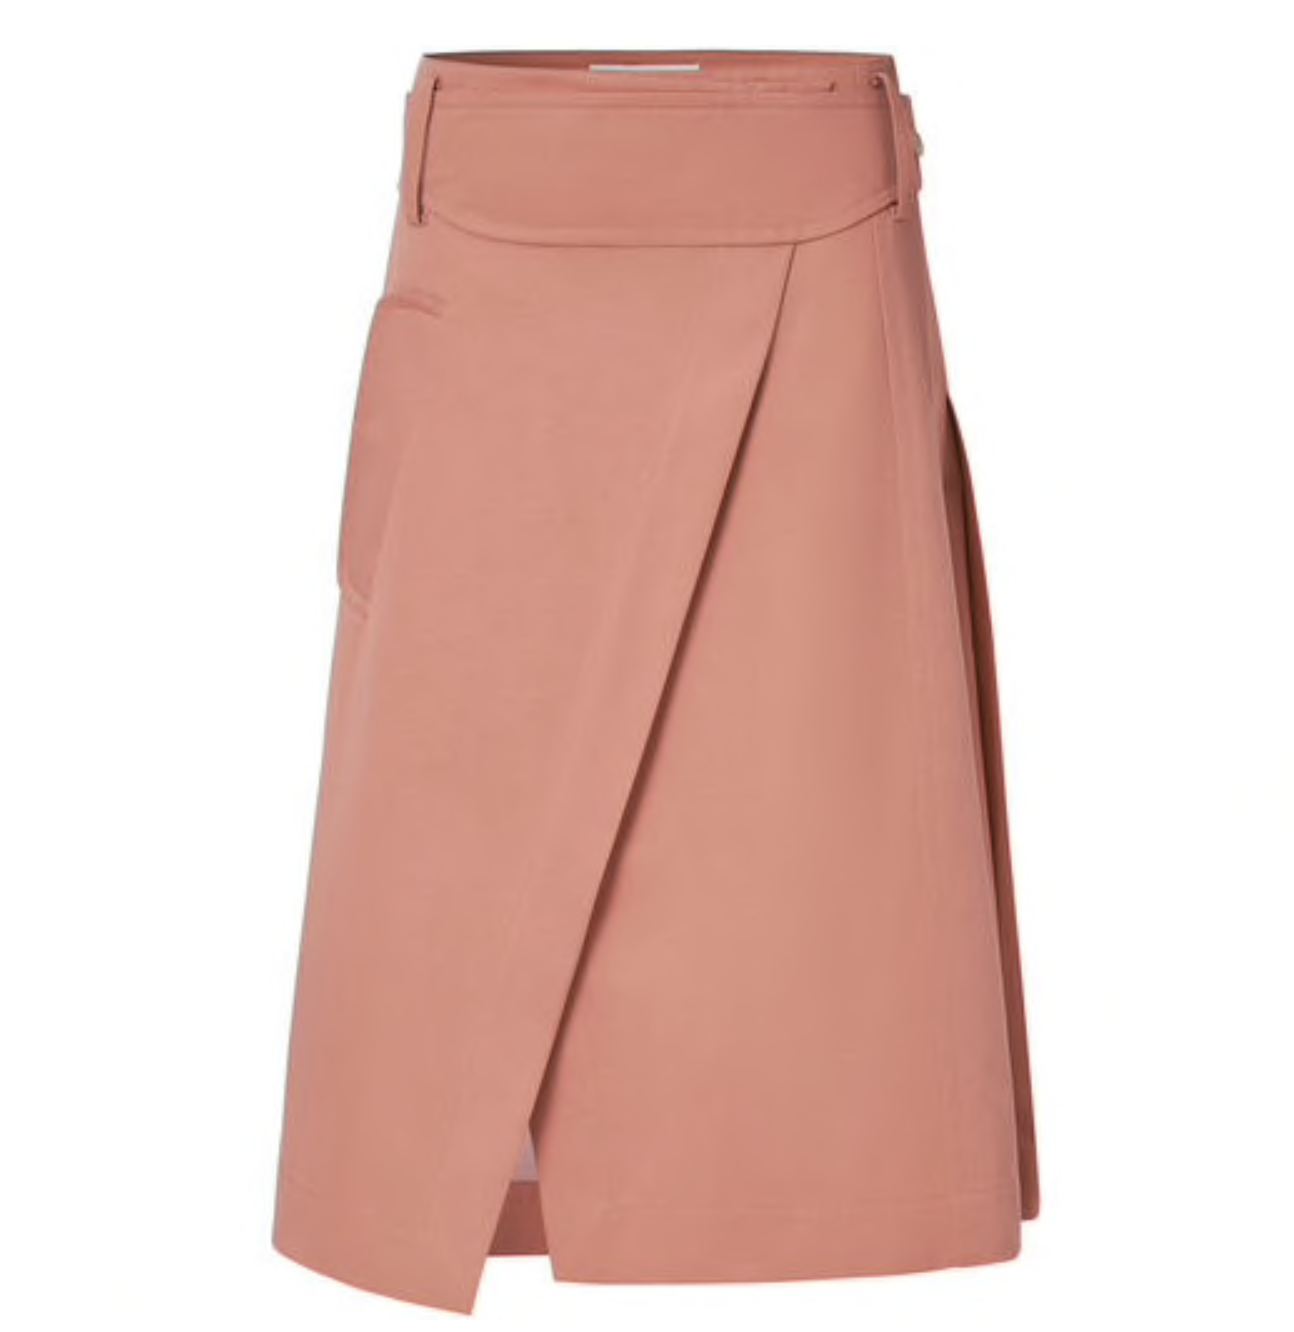 Oroton Cotton-Linen Wrap Skirt $349.00 Georgie Story